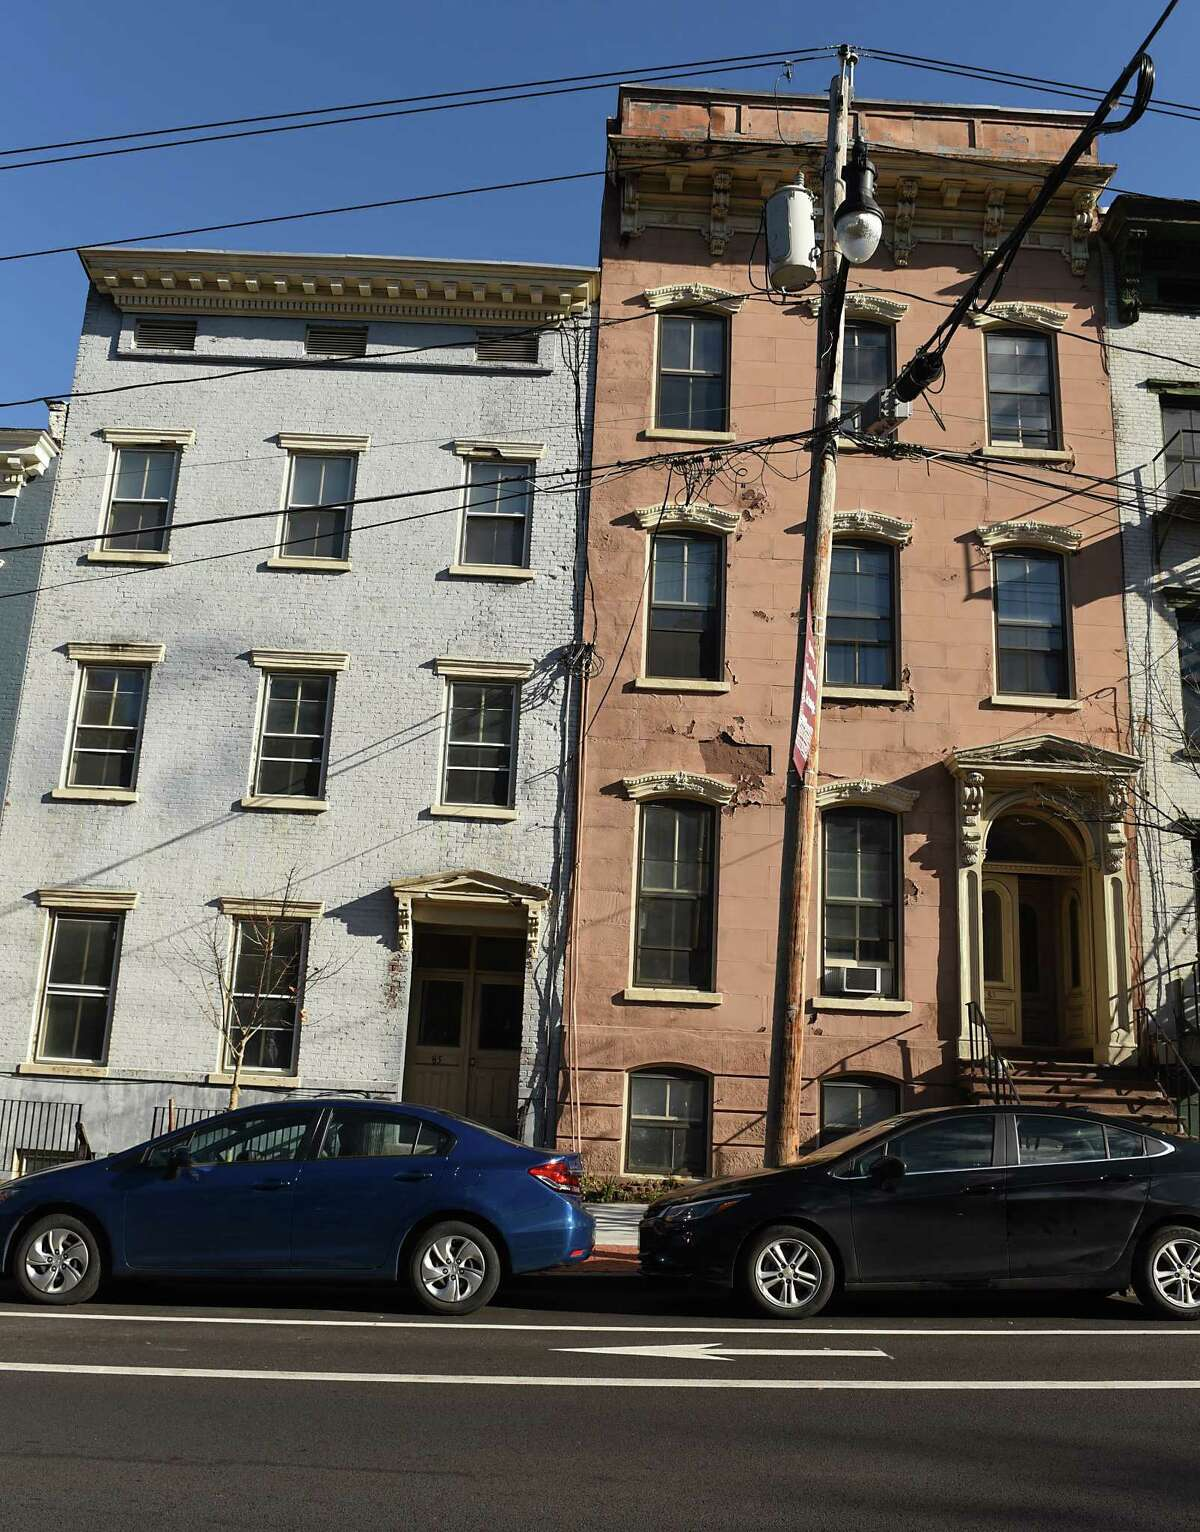 Buildings at 85, left, and 83 Ten Broeck St. on Friday, Nov. 10, 2017 in Albany, N.Y. A Rochester-based developer planning to rehabilitate roughly 70 buildings in Arbor Hill wants an $8 million reduction in taxes over 30 years to help the $47 million affordable housing project come to fruition on Clinton Avenue and Ten Broeck St. (Lori Van Buren / Times Union)`